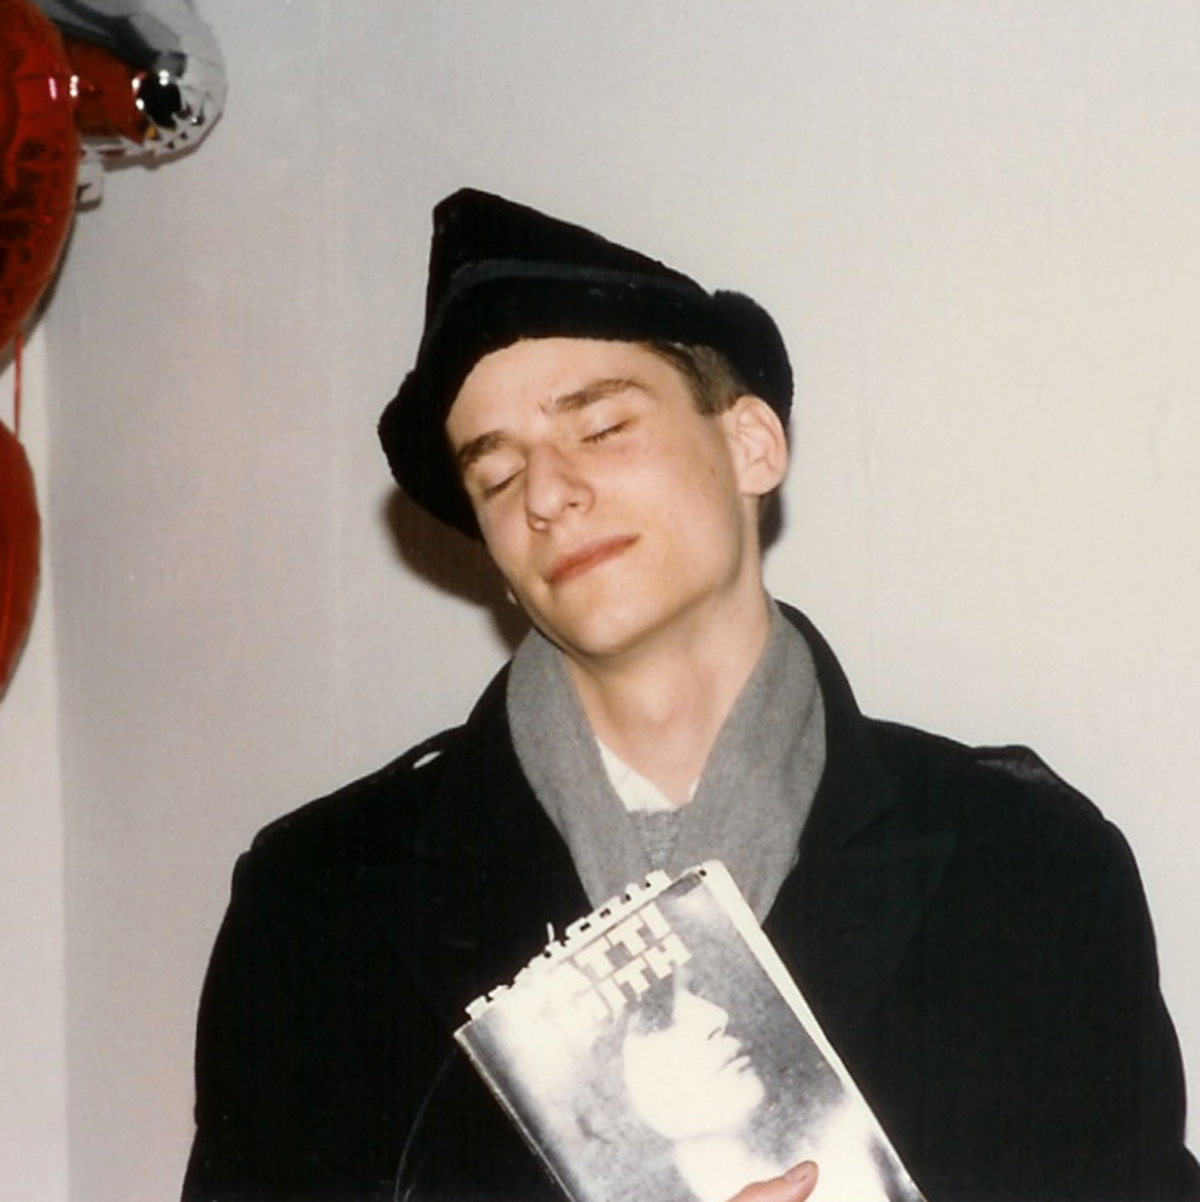 Derick with Patti Smith Book, Babel